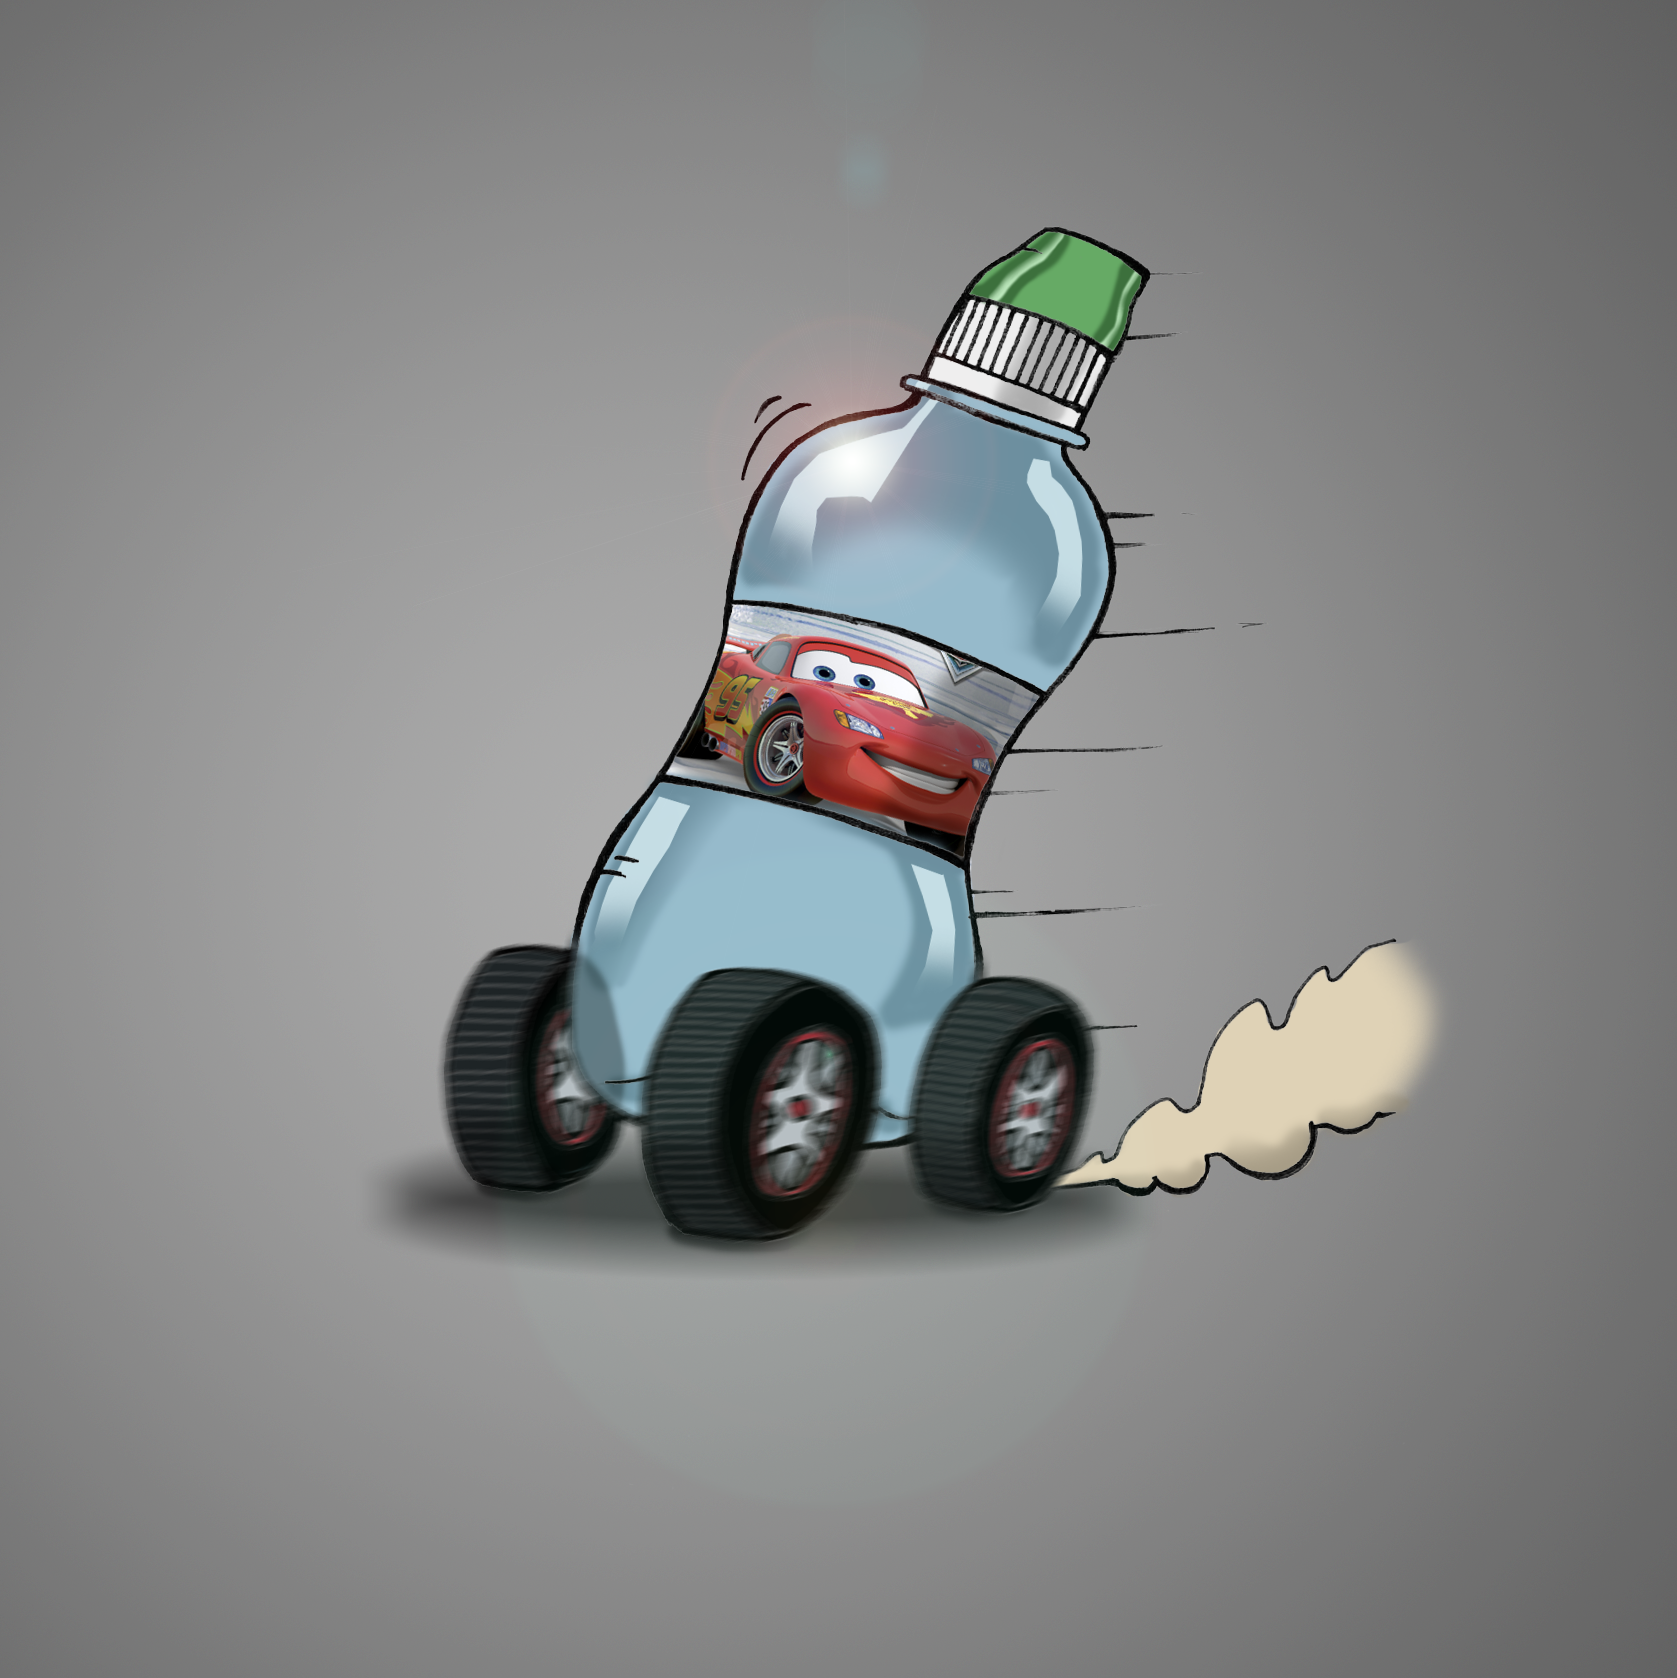 Bottle_with_Wheels.png